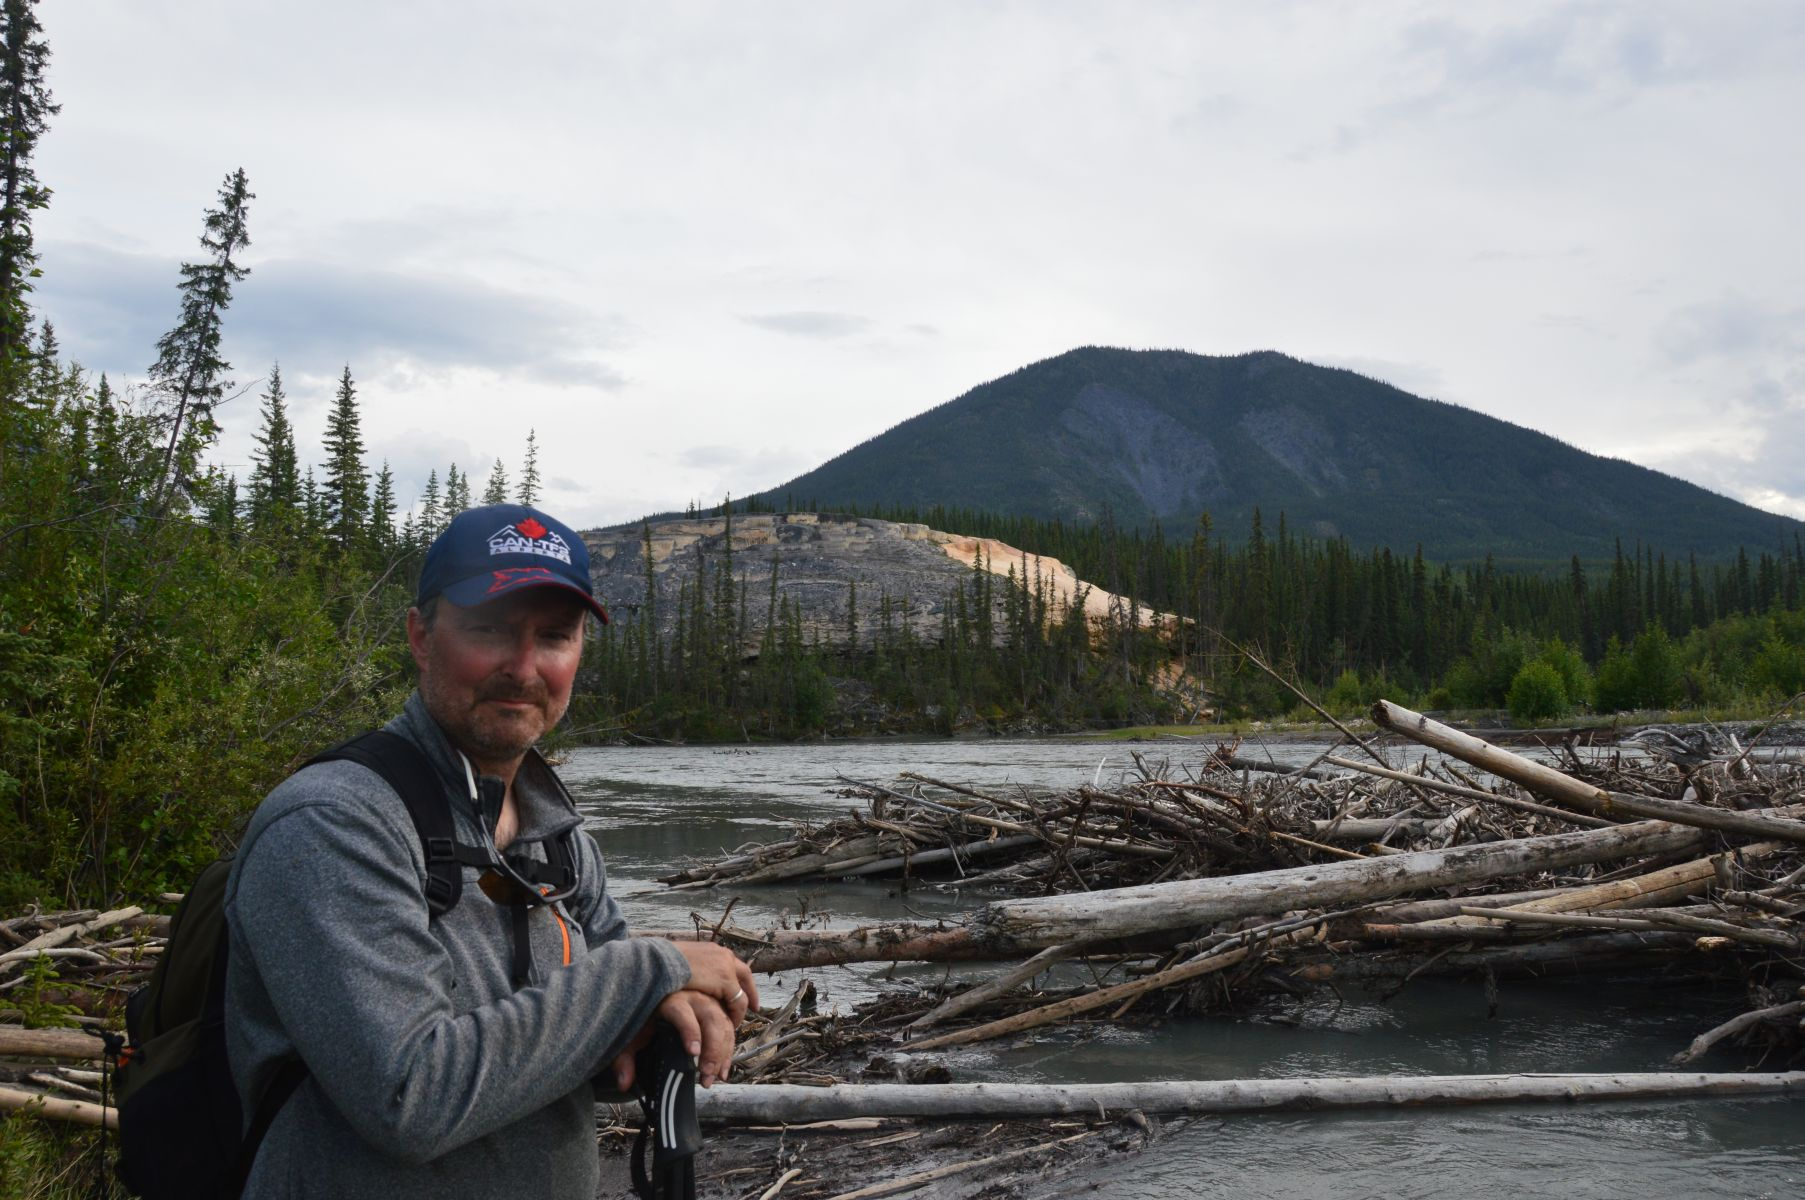 As a GIS Ambassador, David Parry wants to share his love of nature with his interest in mapping with teachers and students in Edmonton.